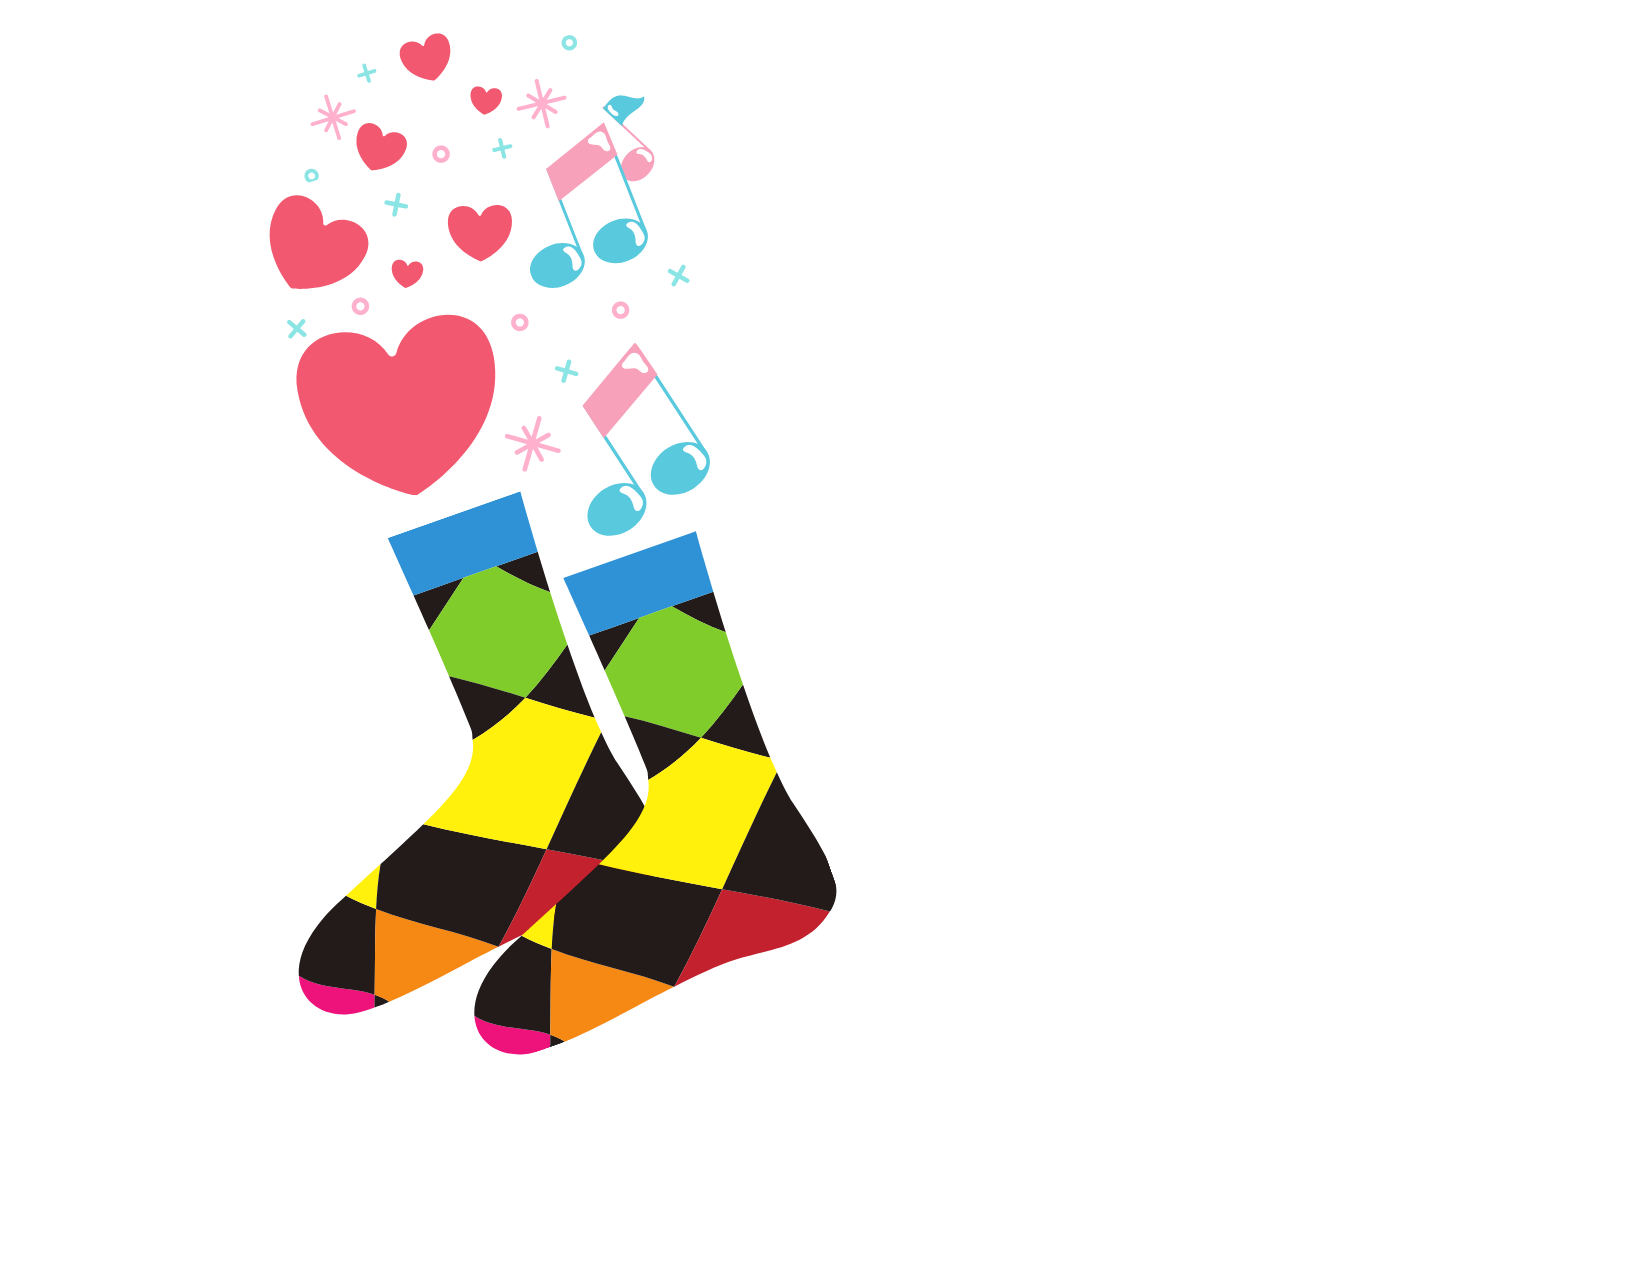 Graphic image of rainbow colored socks with hearts